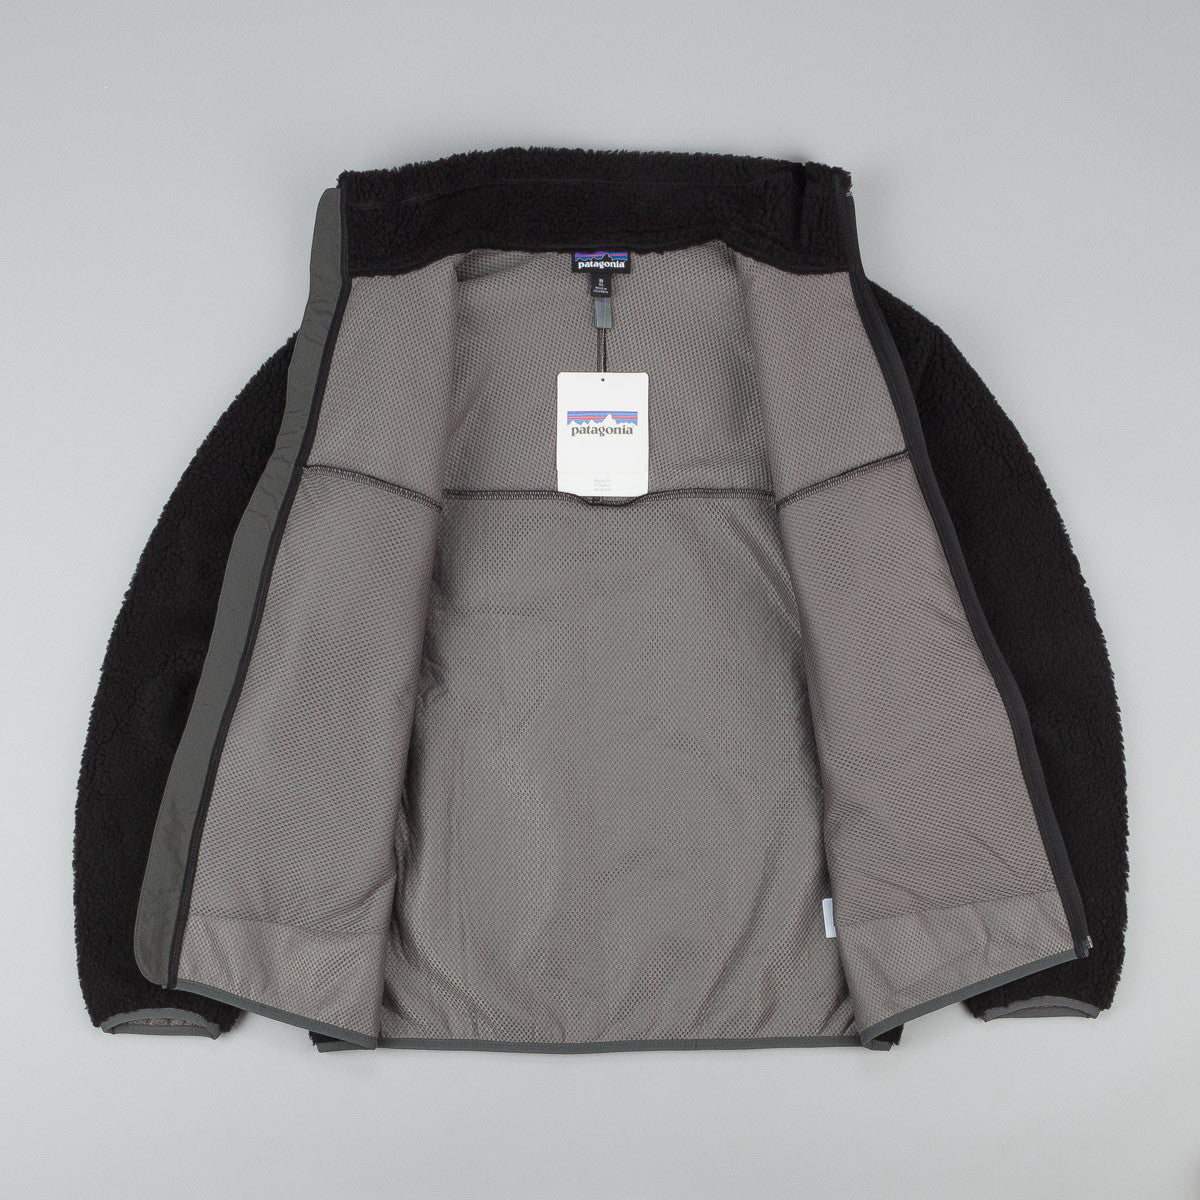 Patagonia Classic Retro-X Jacket - Black / Forge Grey